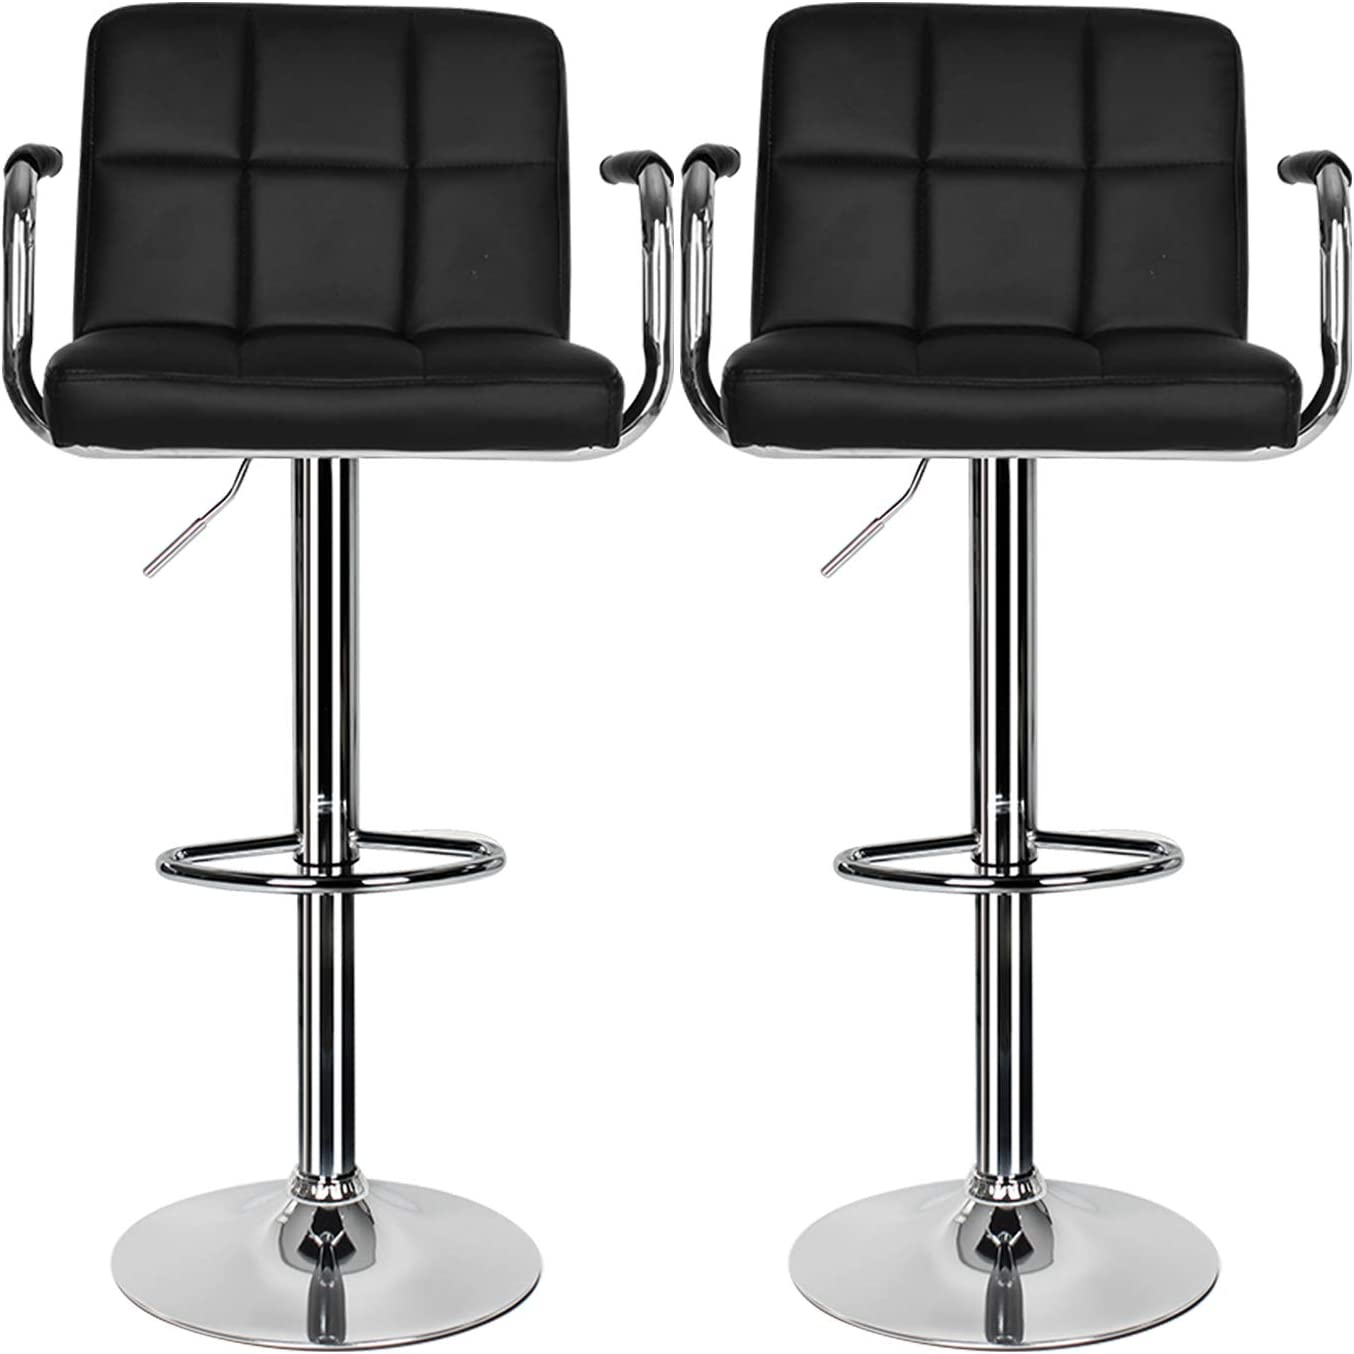 Bar Stools Set of 9, Breakfast Bar Stool with Armrest and Back Swivel Gas  Lift Leather Kitchen Bar Stool for Breakfast Bar/Counter/Kitchen Home ...